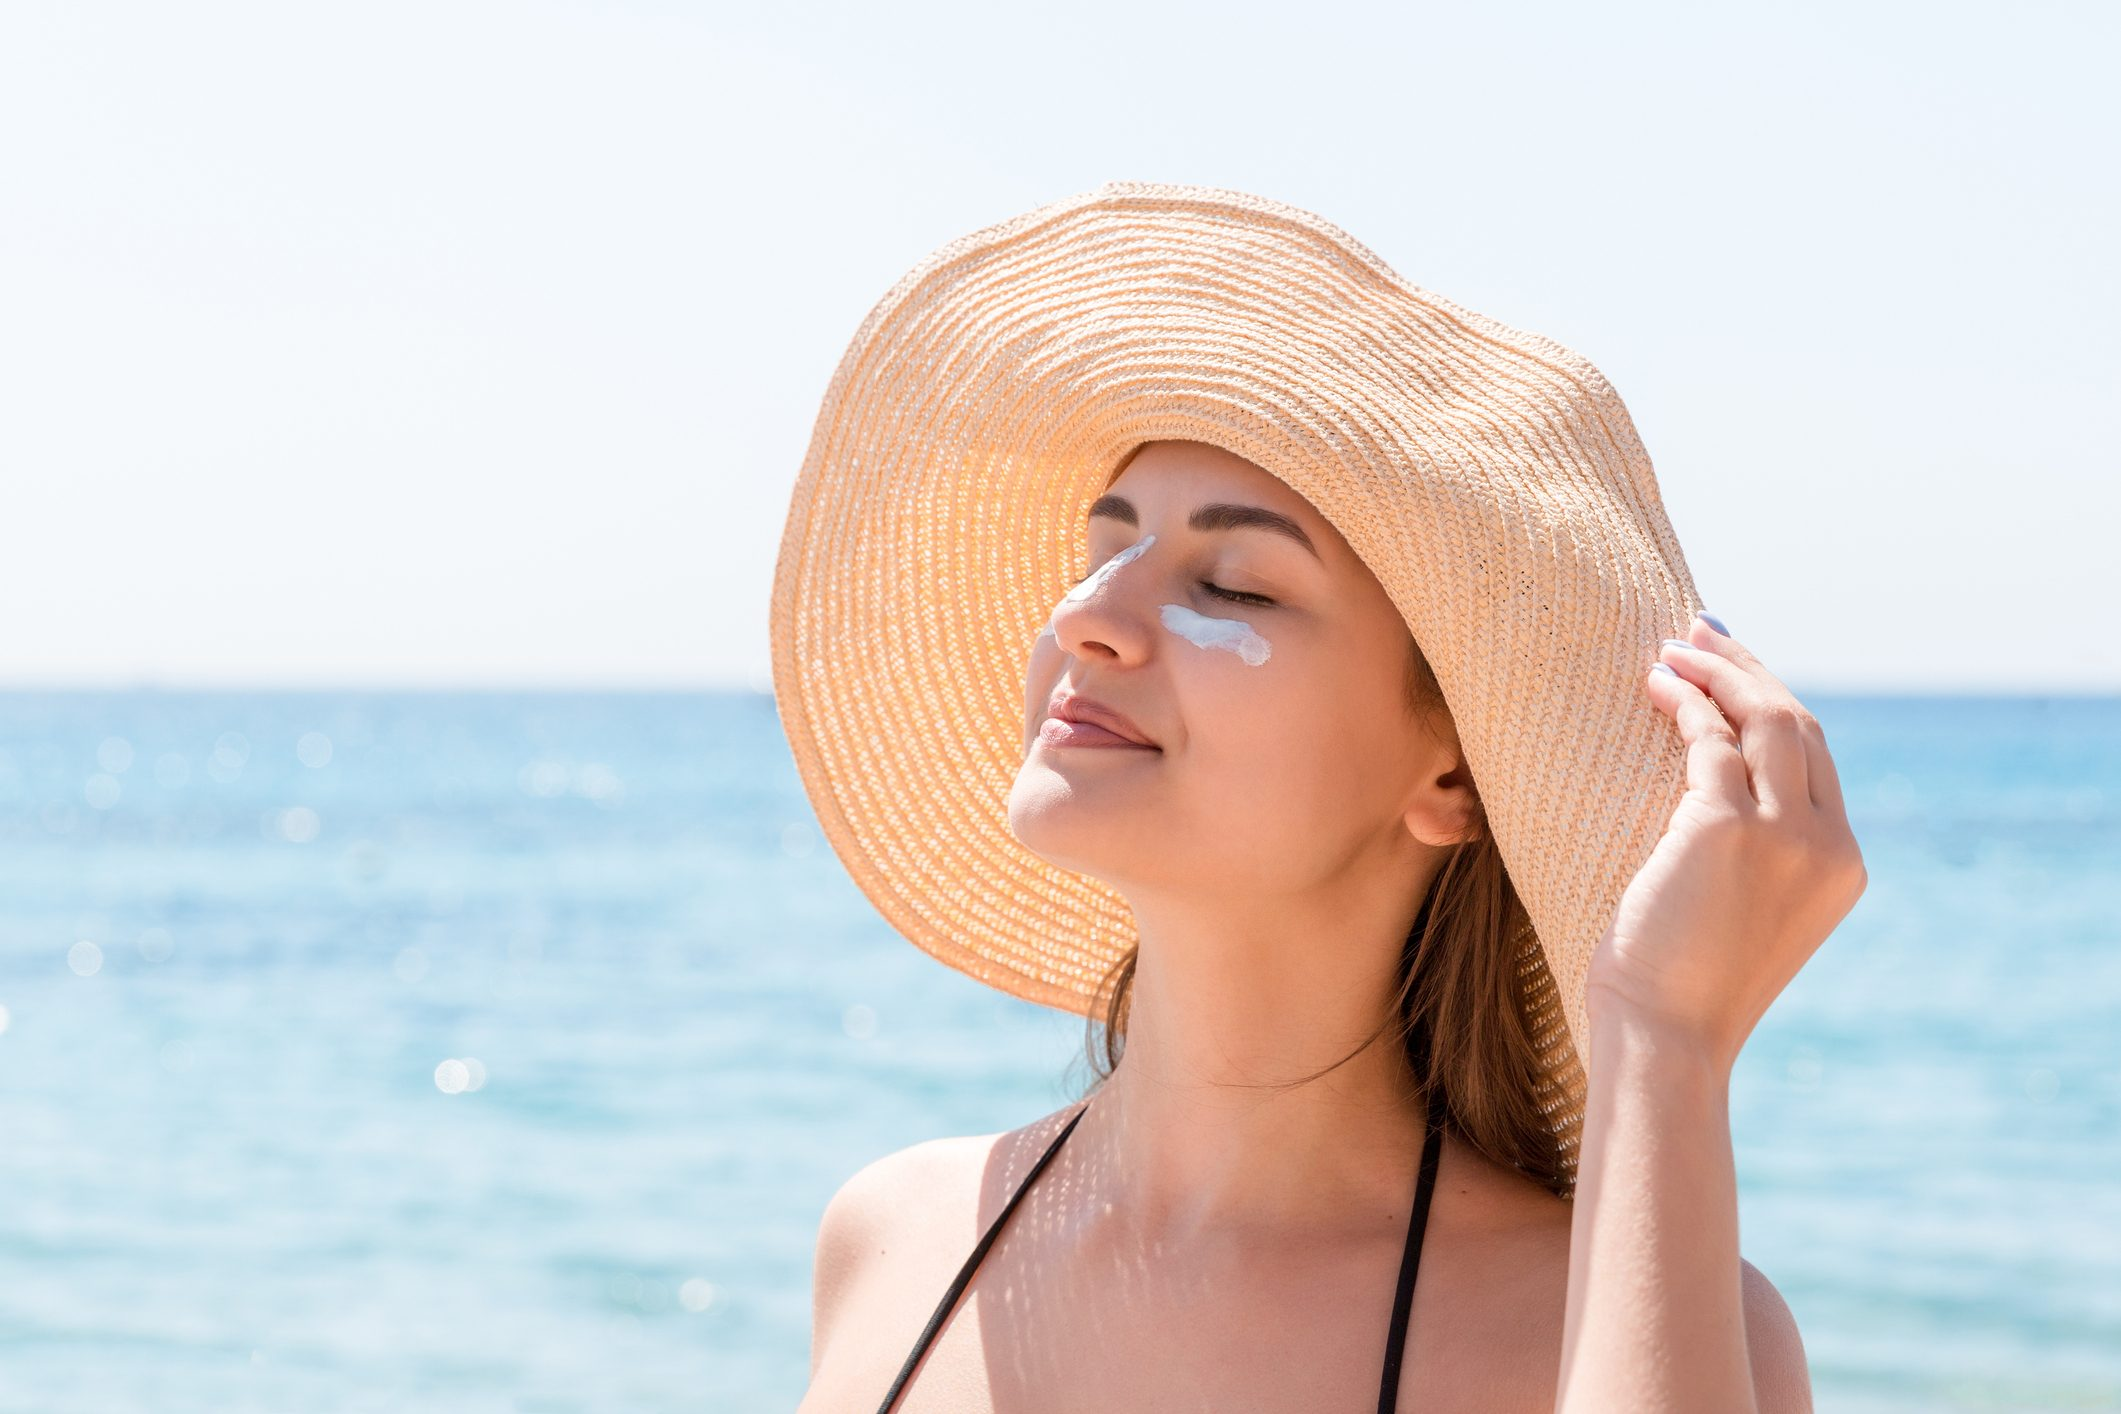 woman in sun hat at the beach